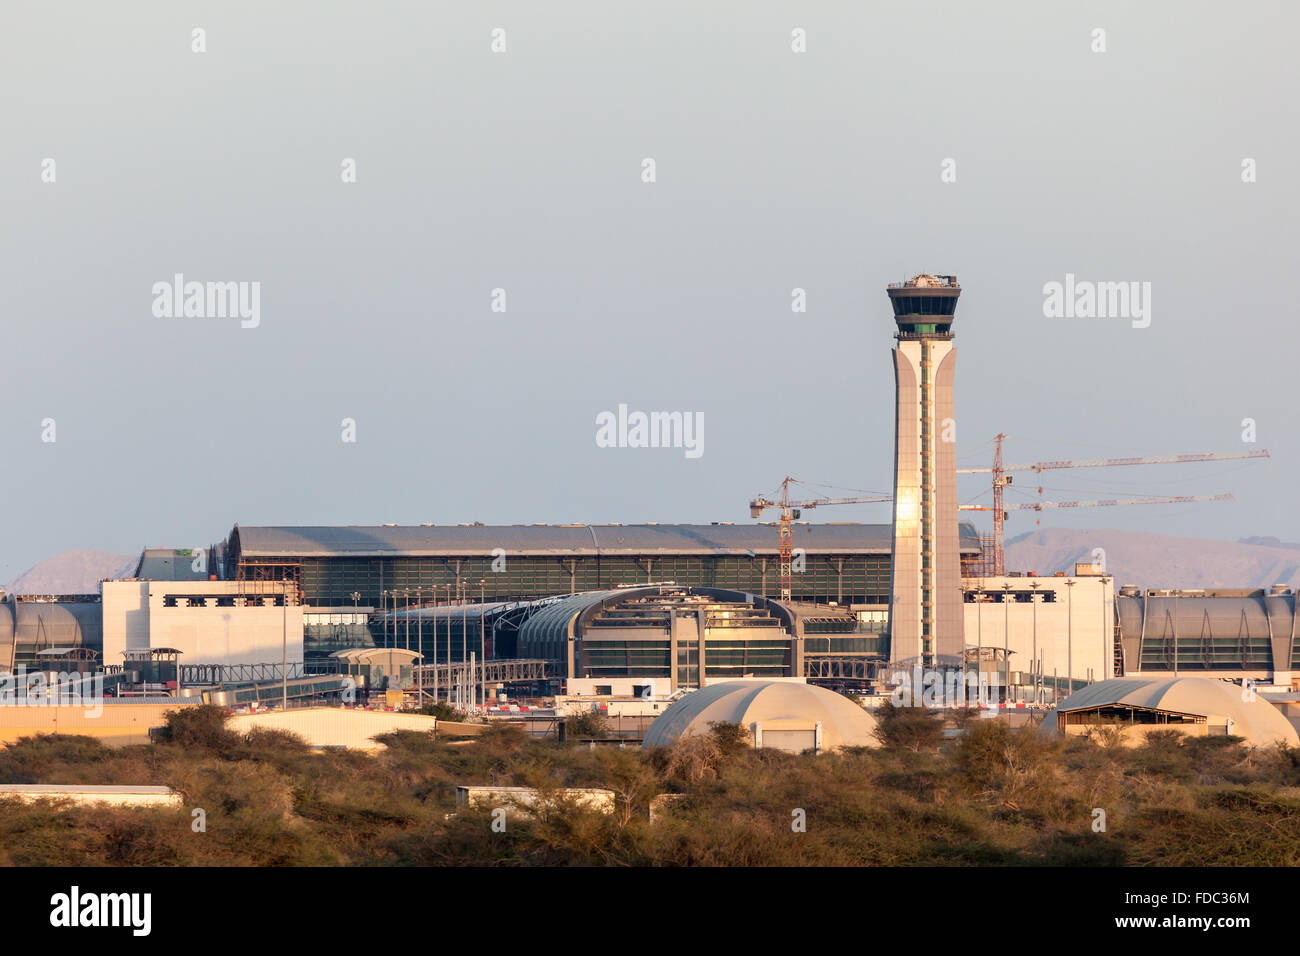 Oman International Airport in Muscat - Stock Image